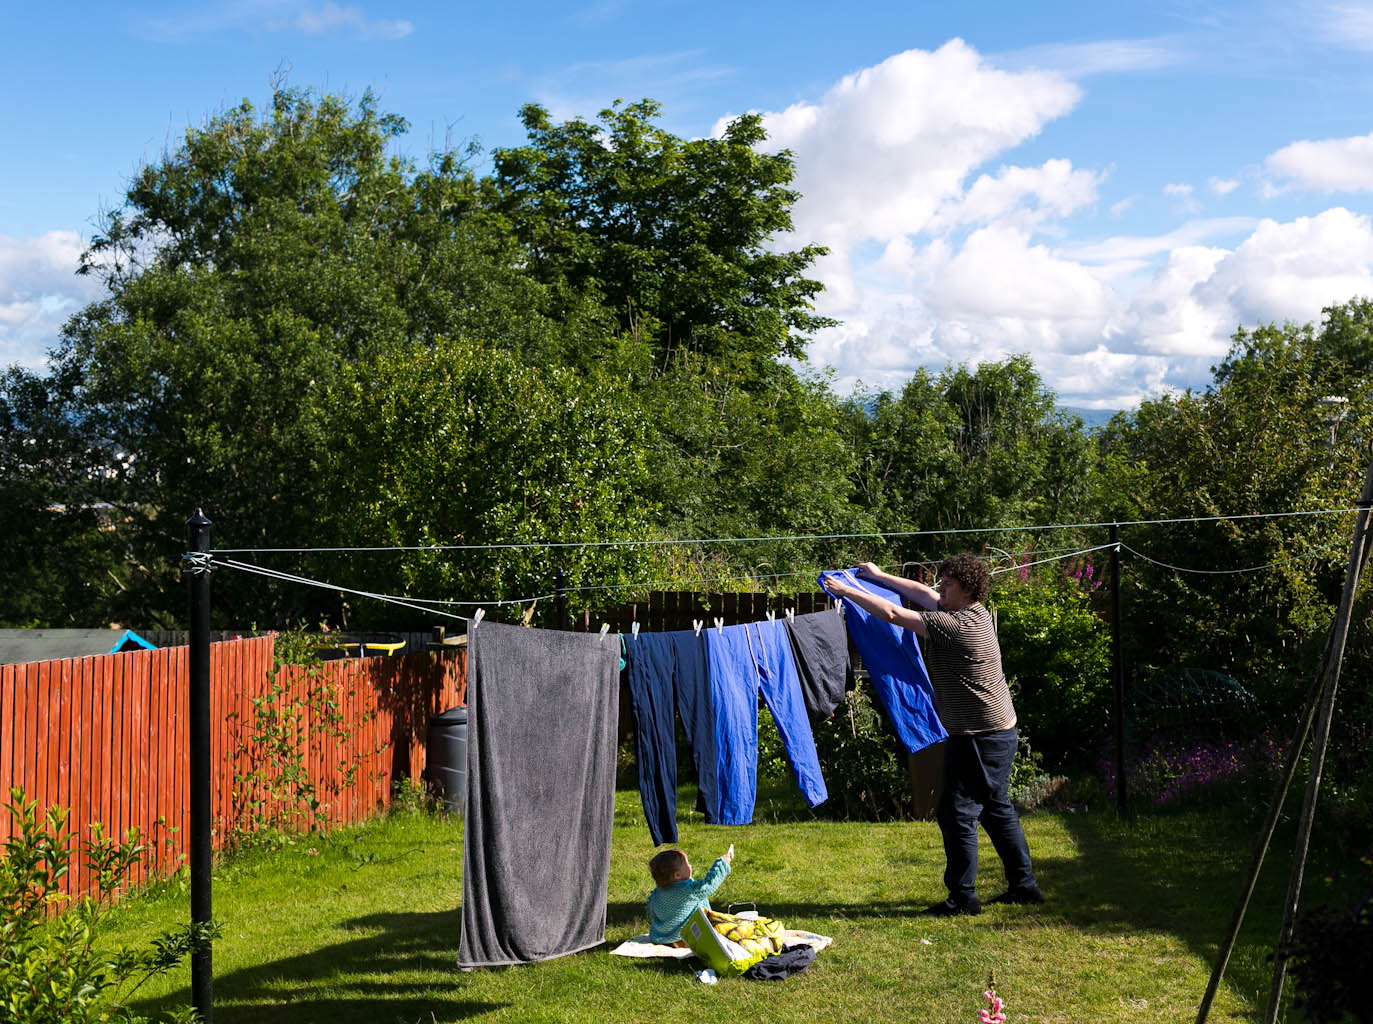 Father hanging washing on line with baby daughter